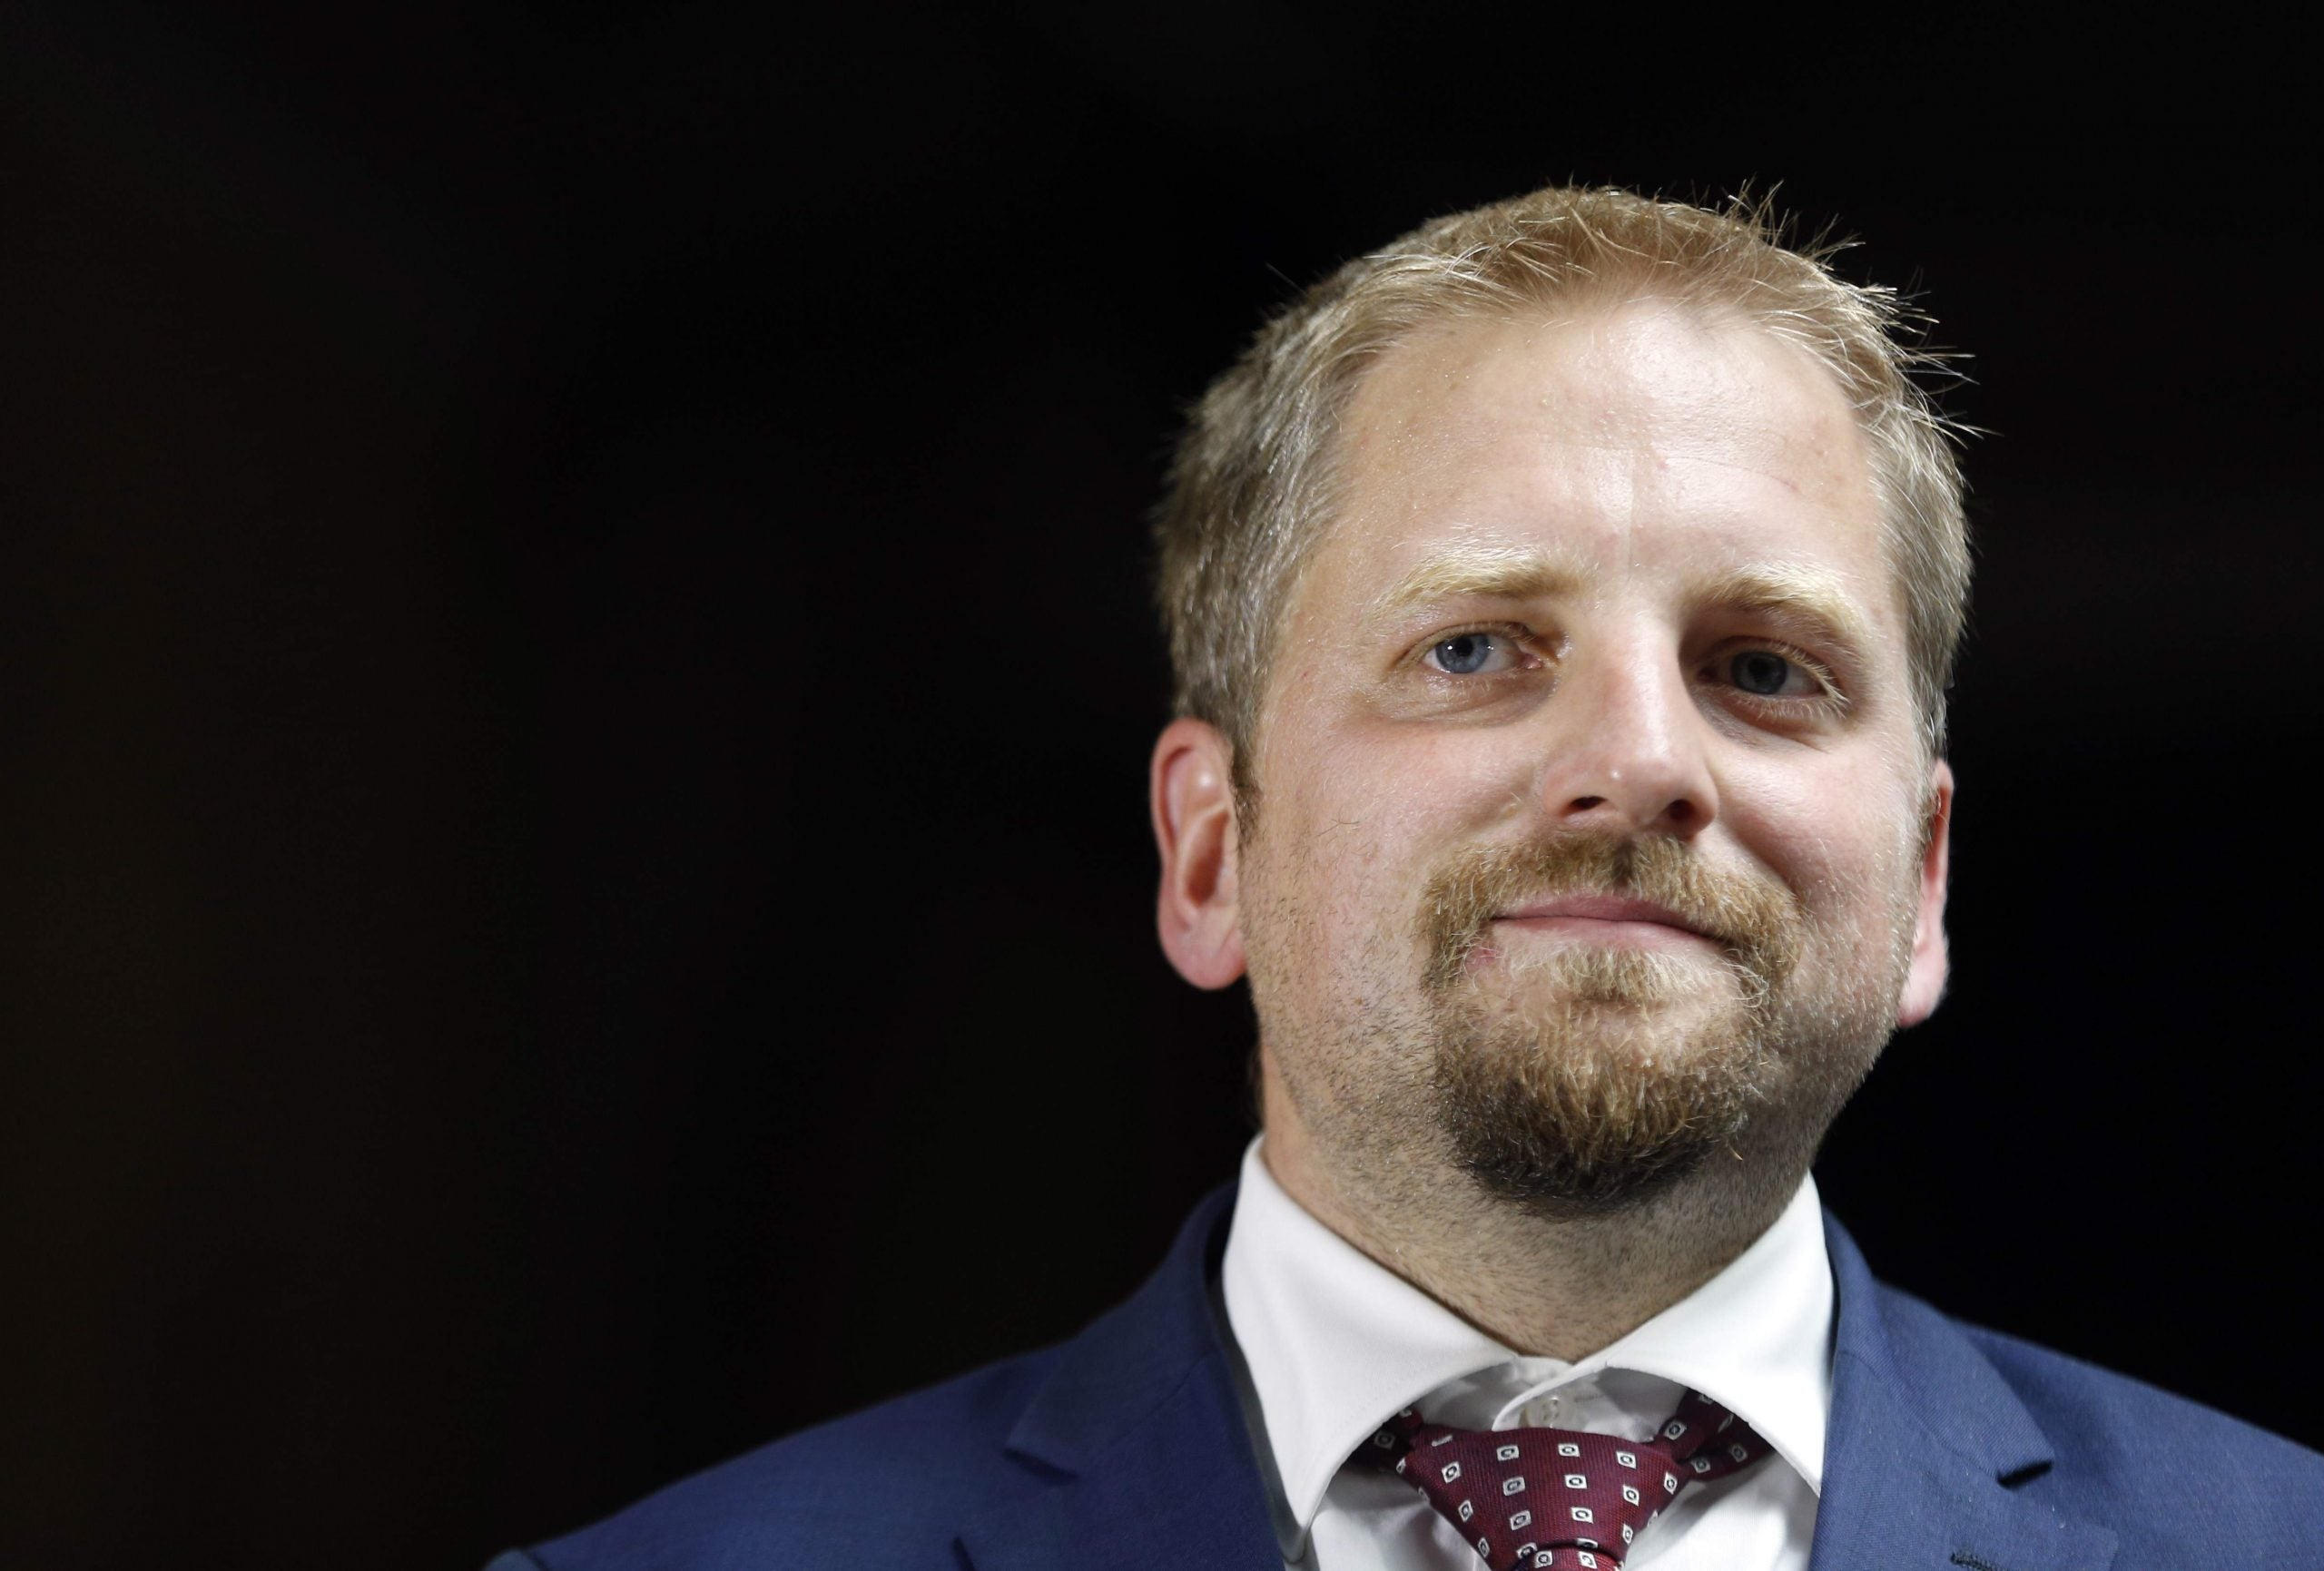 Live and let live: inside the Free Republic of Liberland